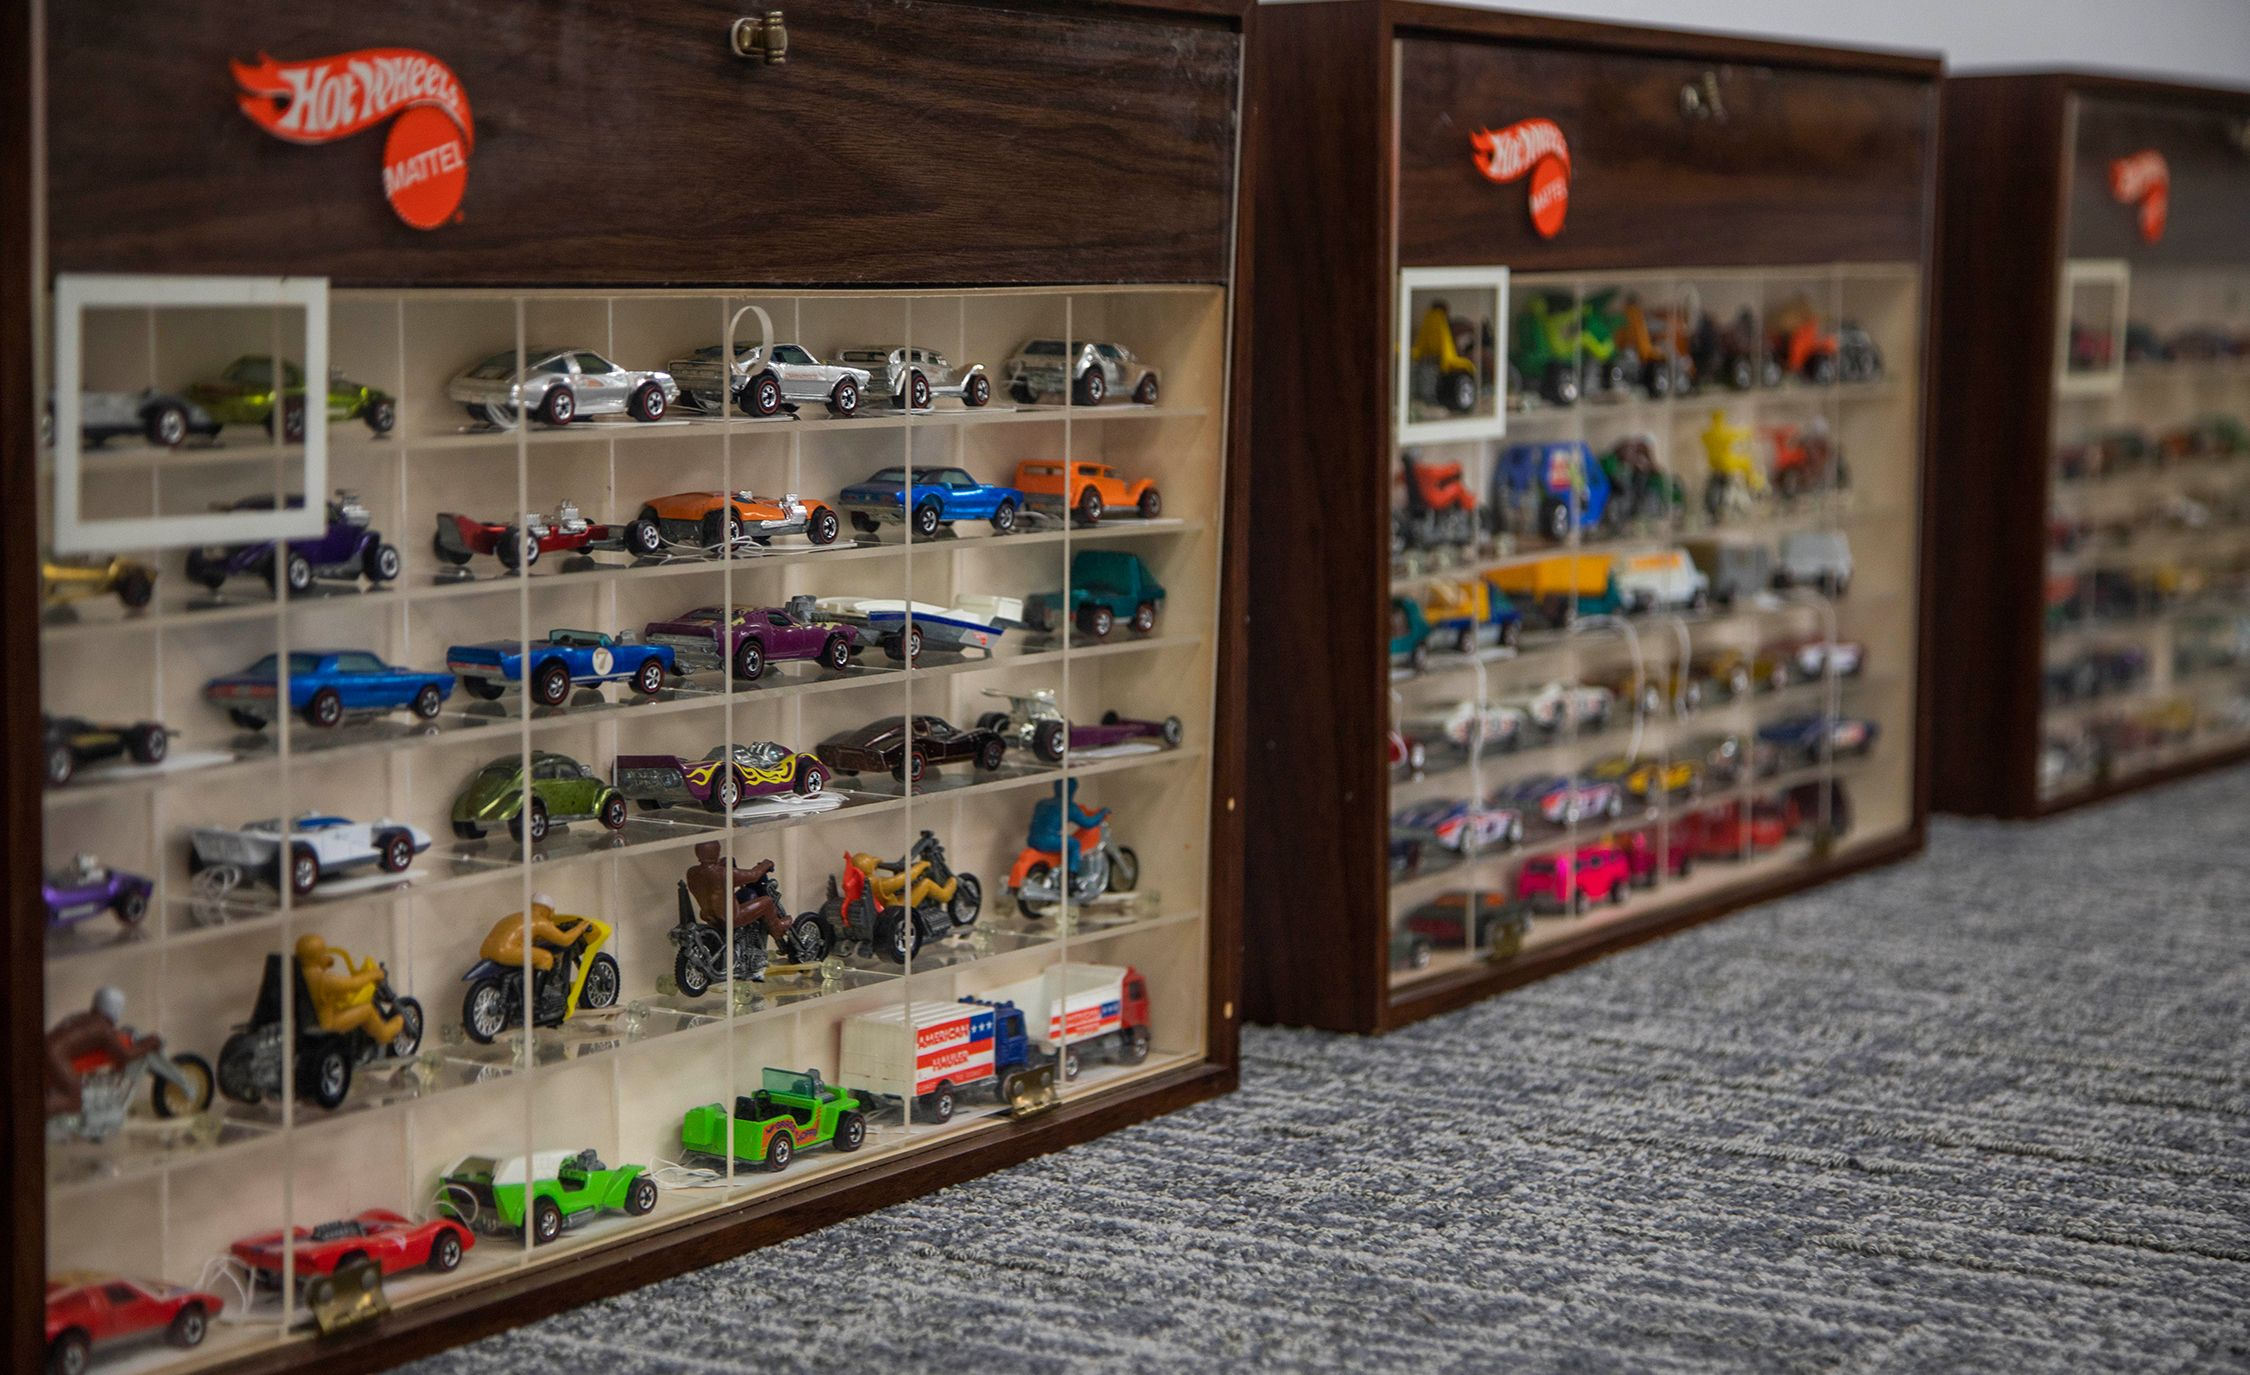 Inside the World's Most Valuable Hot Wheels Collection